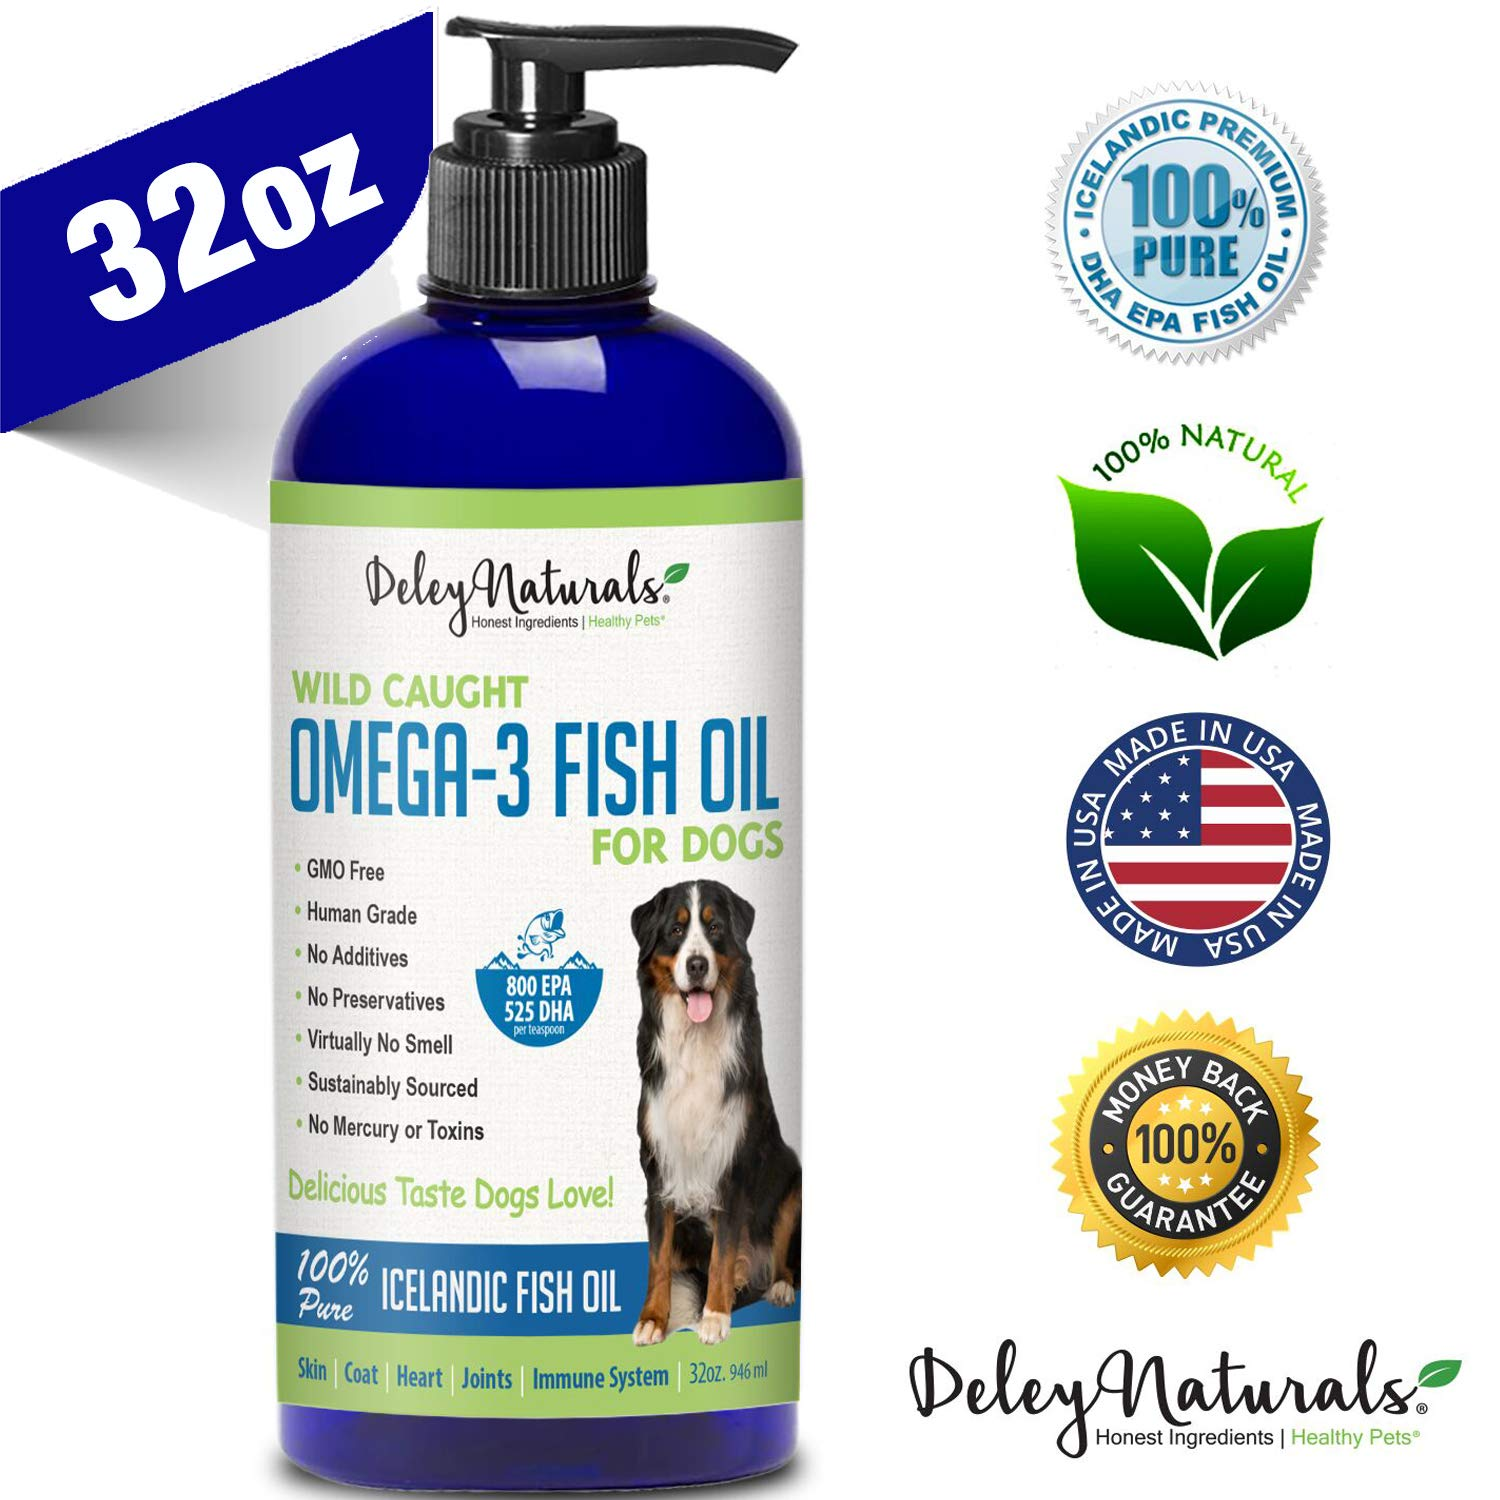 Wild Caught Fish Oil for Dogs - Omega 3-6-9, GMO-Free - Reduces Shedding, Supports Skin, Coat, Joints, Heart, Brain, Immune System - Highest EPA & DHA Potency - Only Ingredient is Fish - 32 oz by Deley Naturals